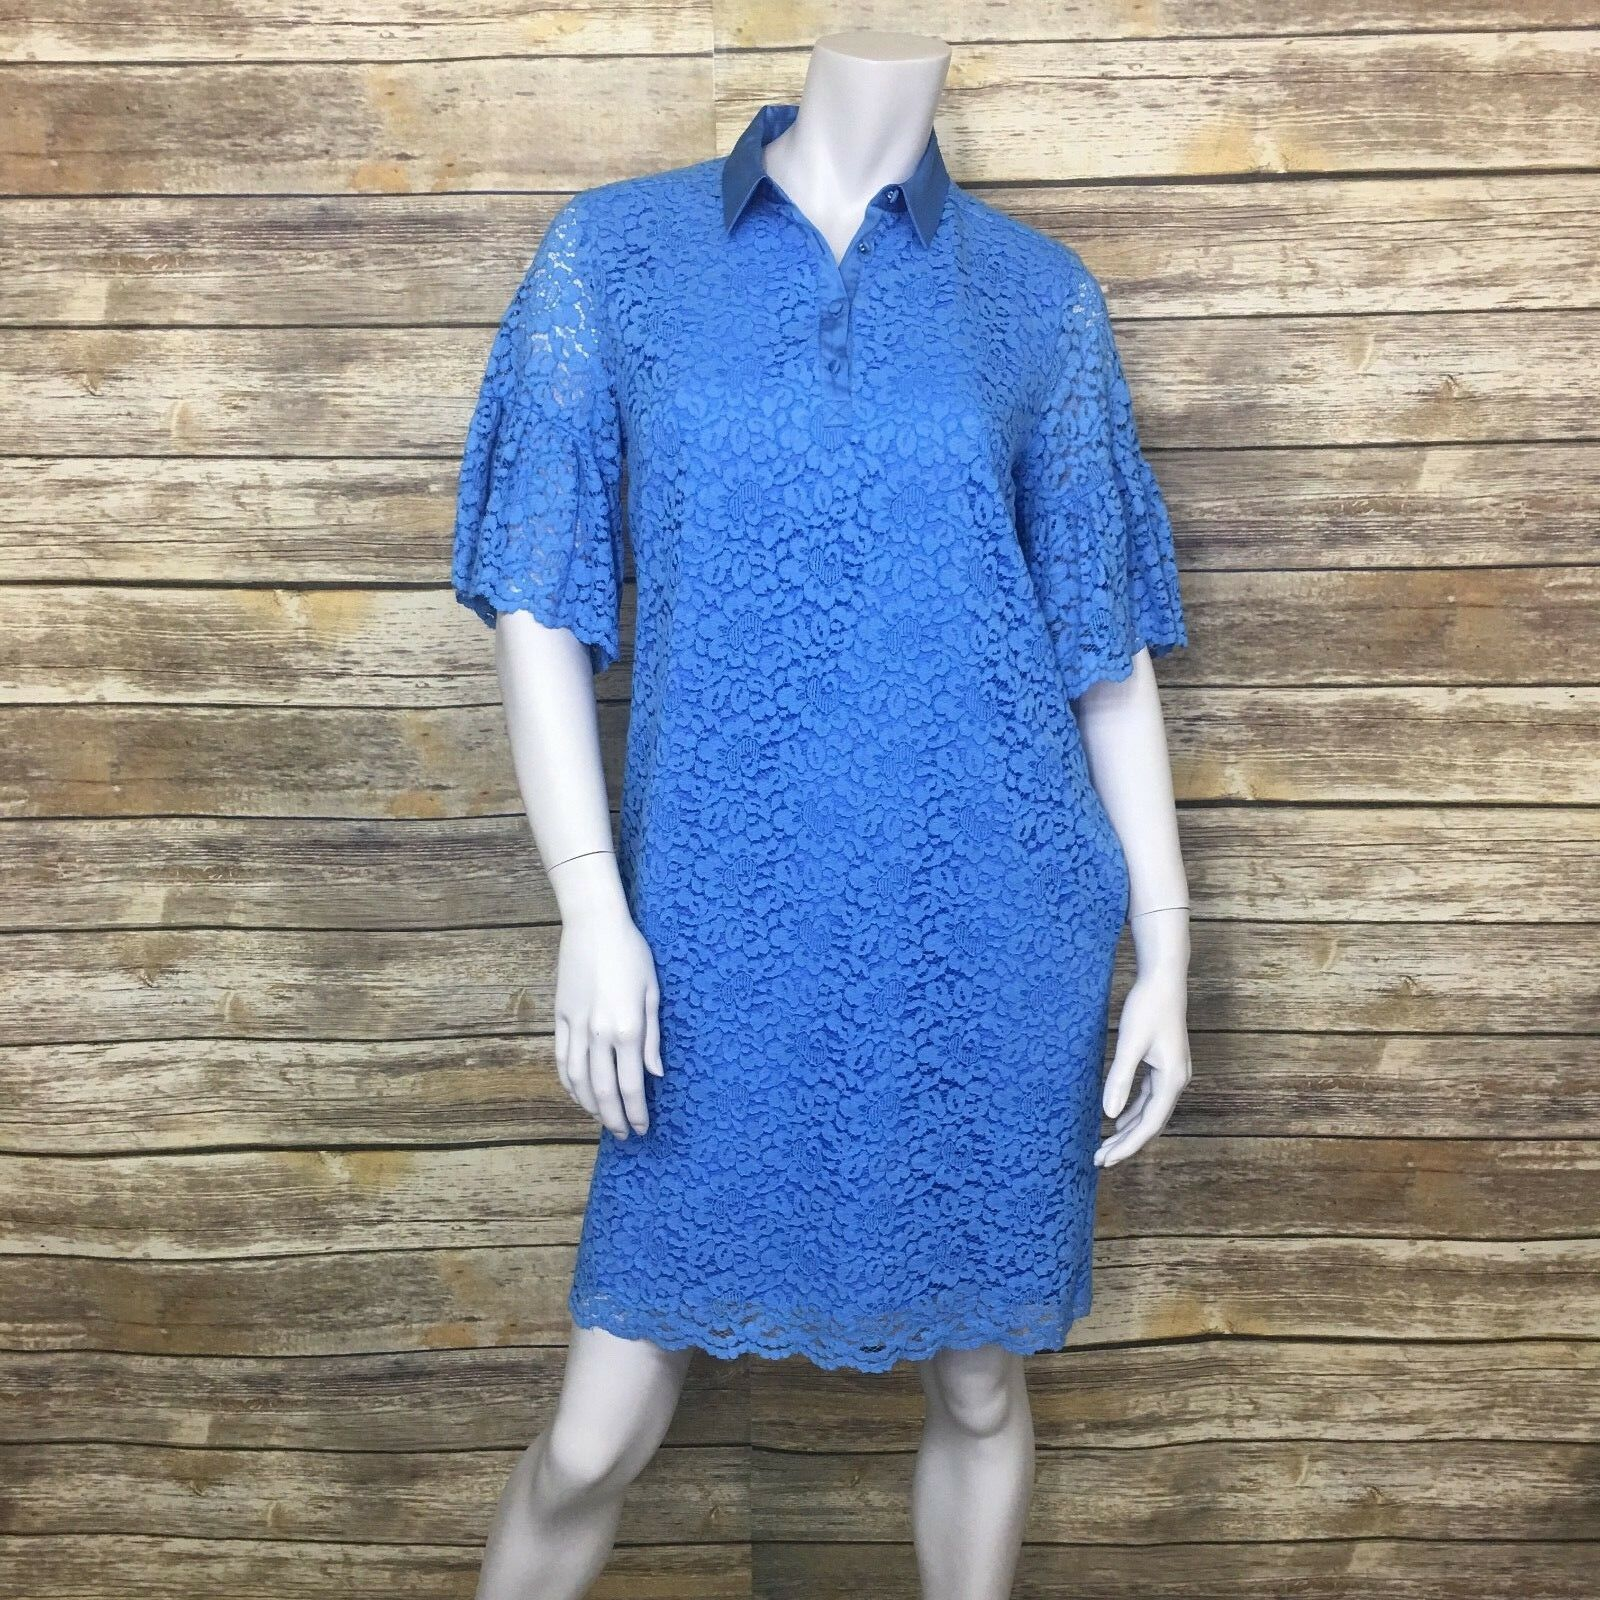 f15d5001199 ... NWT BANANA REPUBLIC Size Small Floral Lace 3 4 4 4 Bell Sleeve Shift  Polo Dress ...